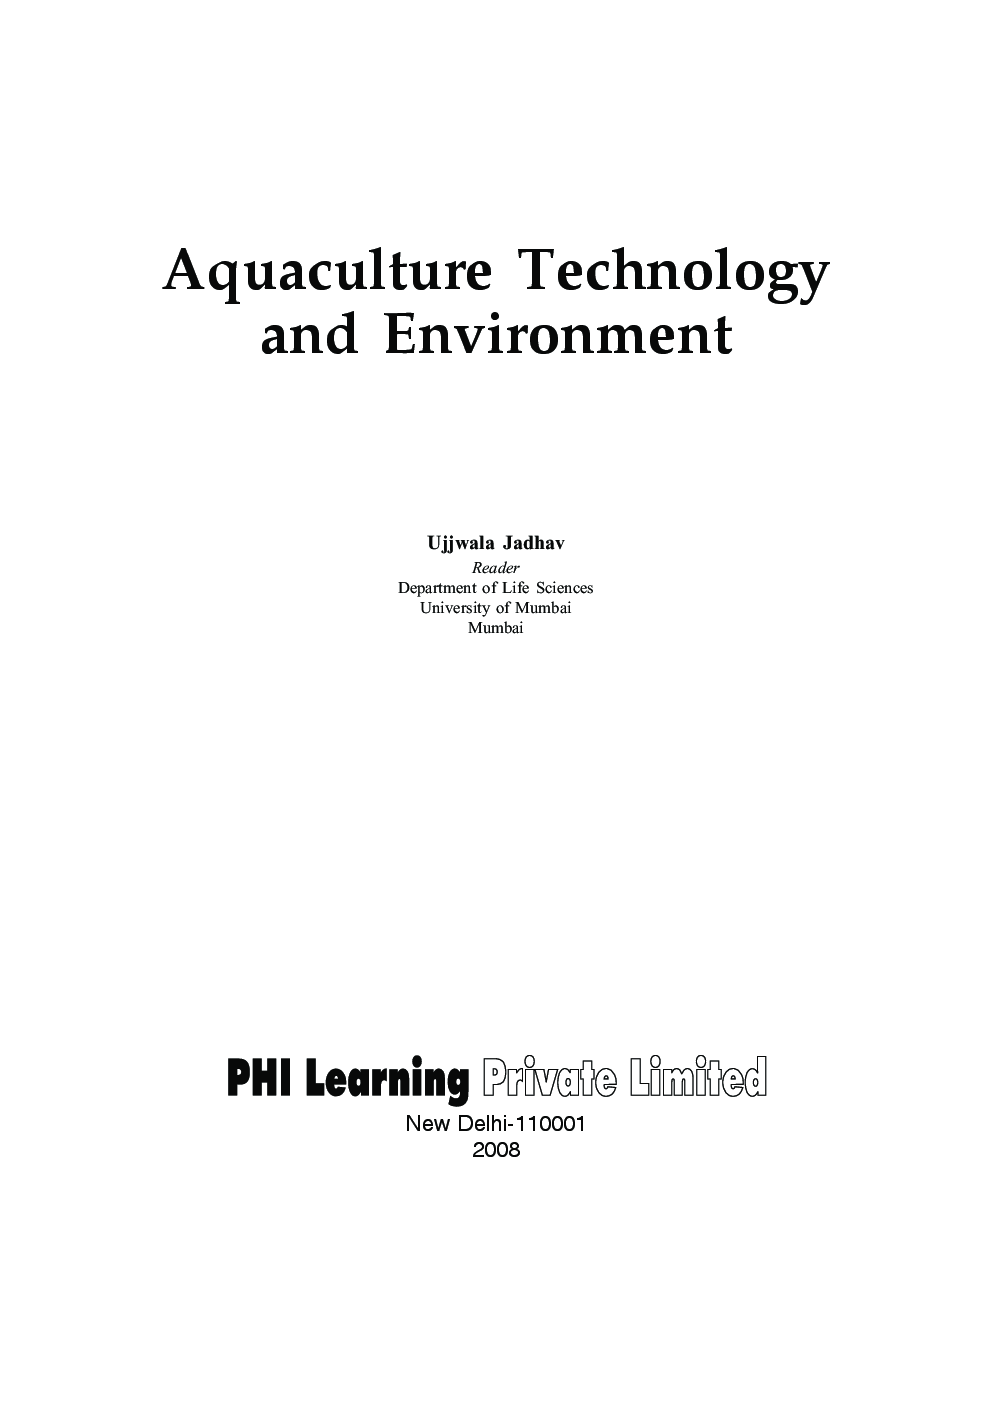 Download aquaculture technology and environment by ujjwala jadhav experience in web reader fandeluxe Image collections